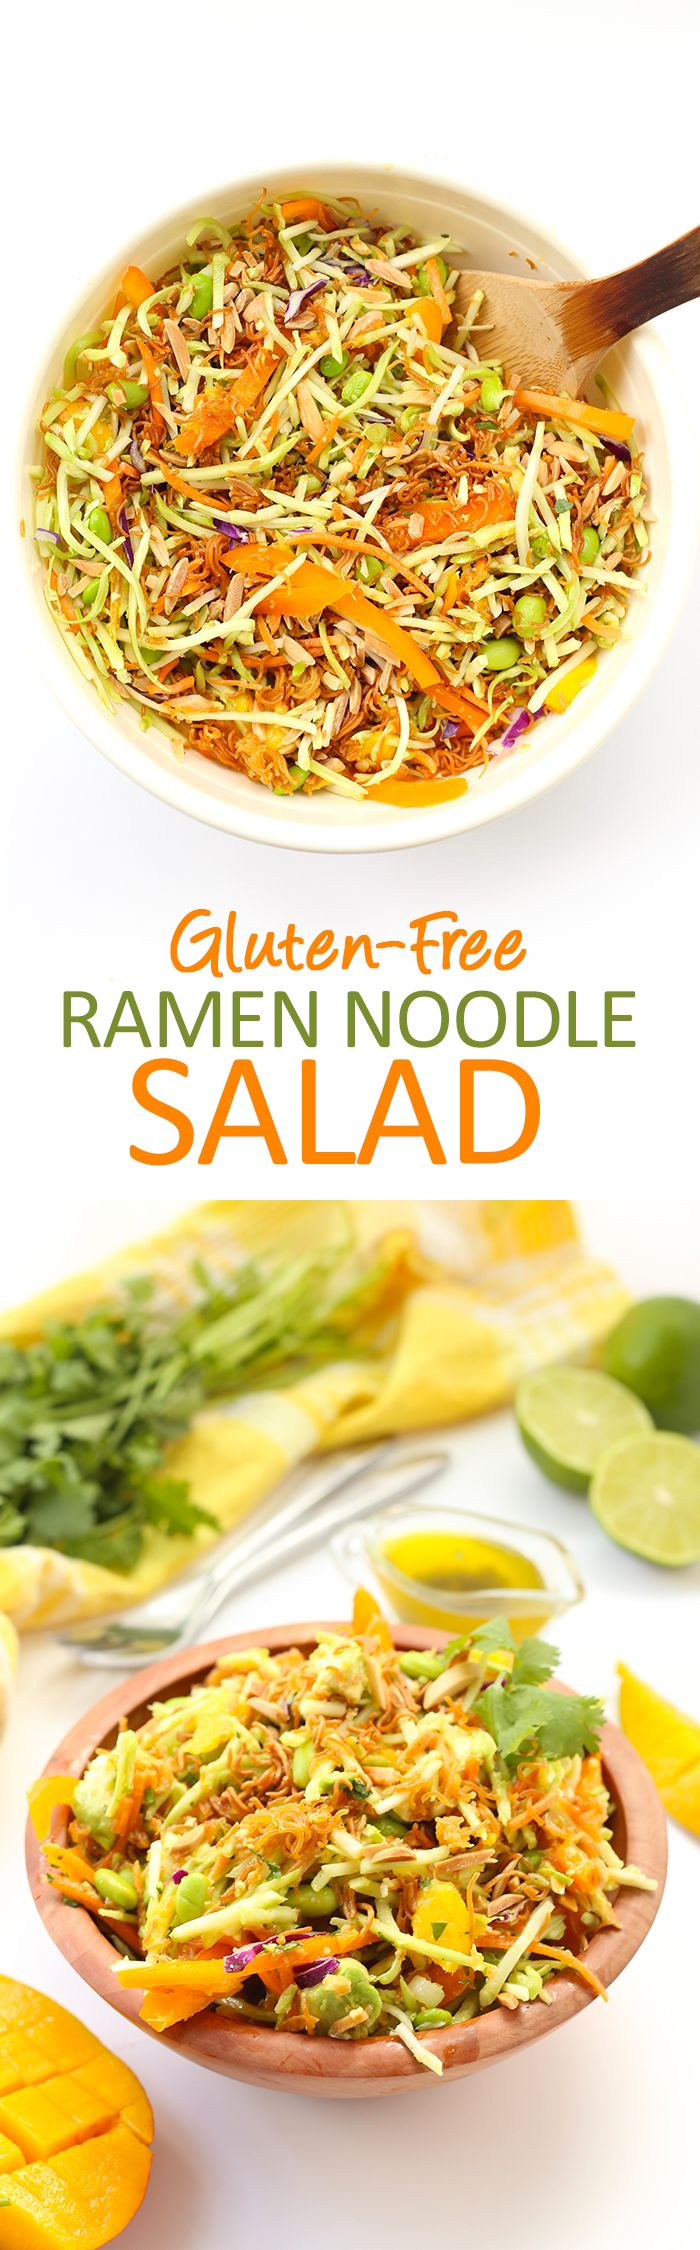 The perfect veggie-filled recipe full of flavour and crunch will make this Gluten-Free Ramen Noodle Salad your new favorite. Using gluten-free ramen noodles and a cilantro-lime dressing, this salad will become a meal staple.